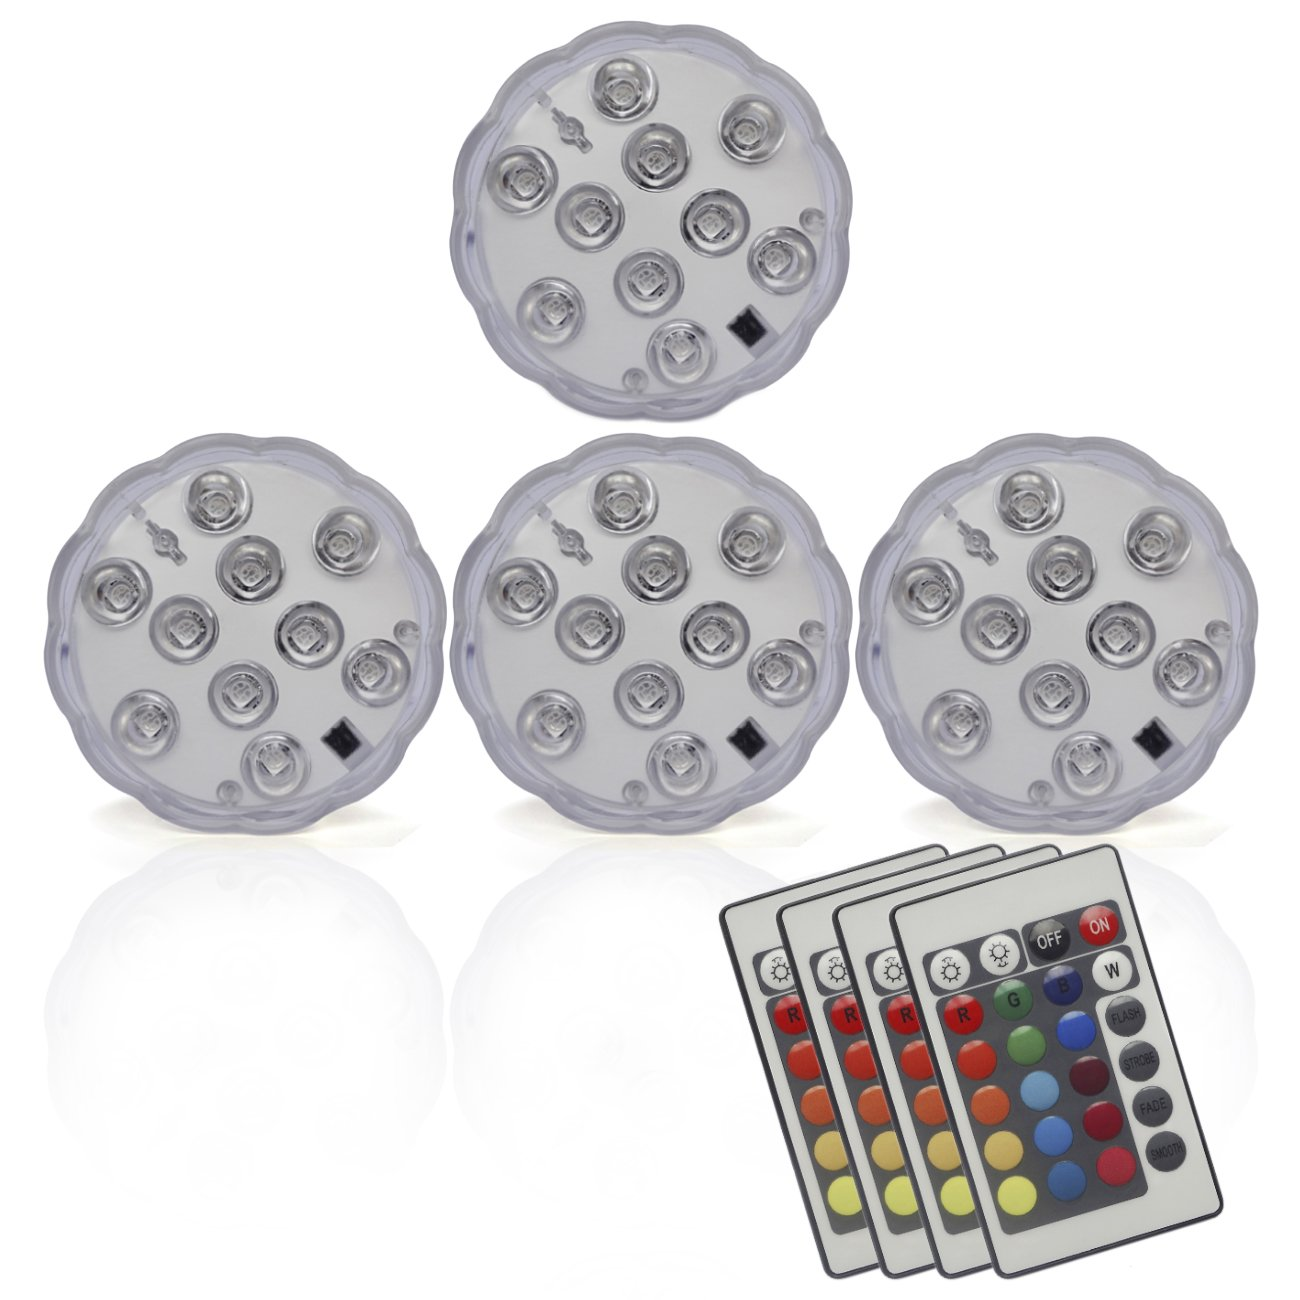 Durawell RGB Color Changing LED Lights, 16 Colors 4 Modes Battery Powered Submersible Lights Remote (4-Pack)